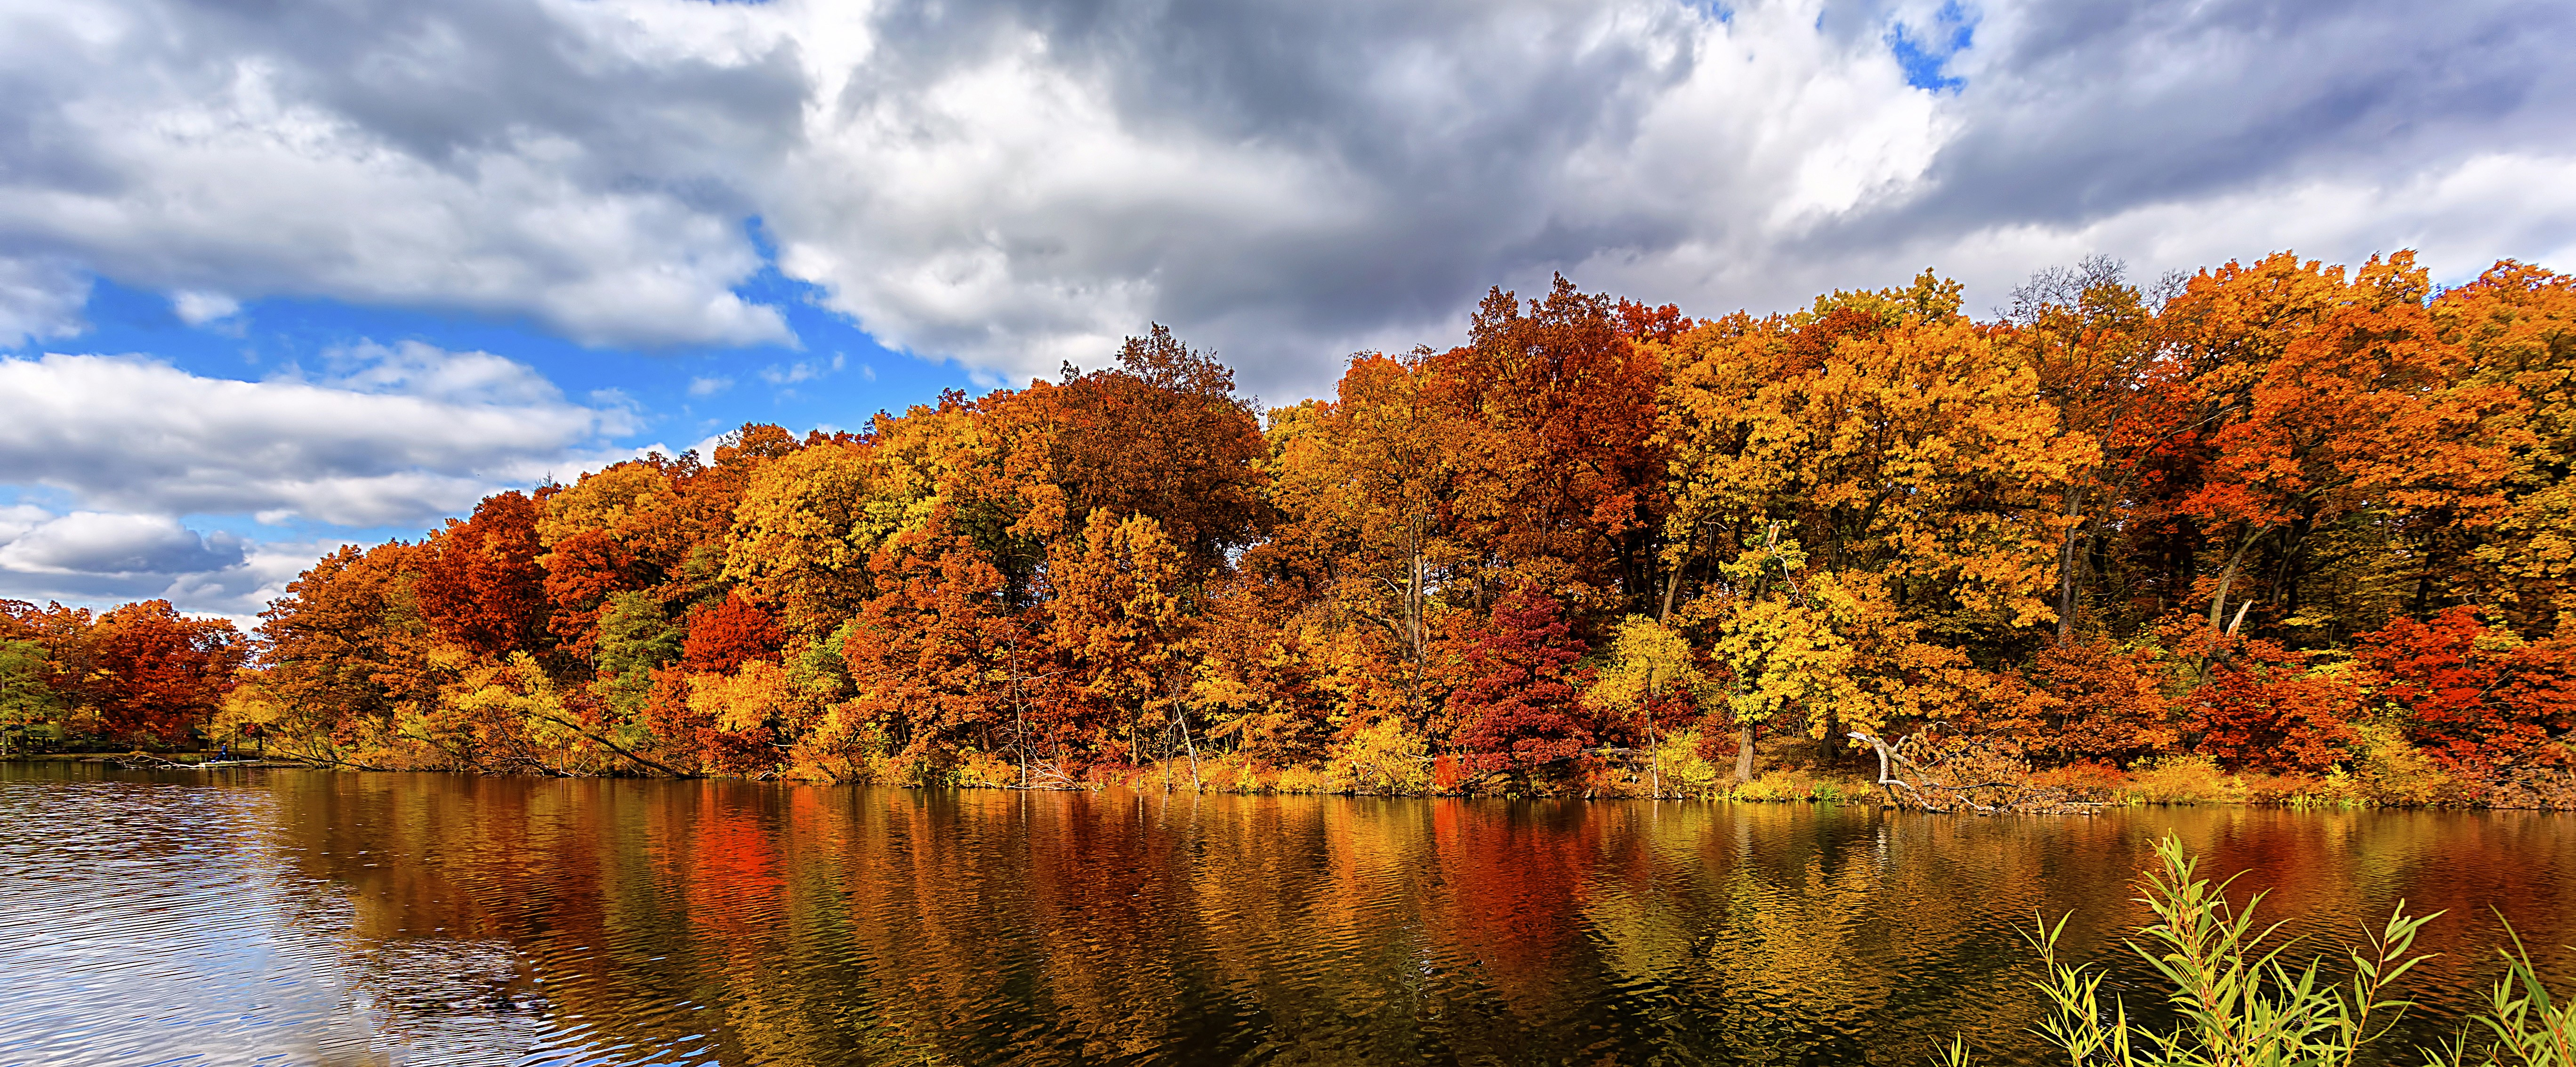 Rustic Fall Desktop Wallpaper Wallpaper Autumn Forest Lake 5k Nature 15480